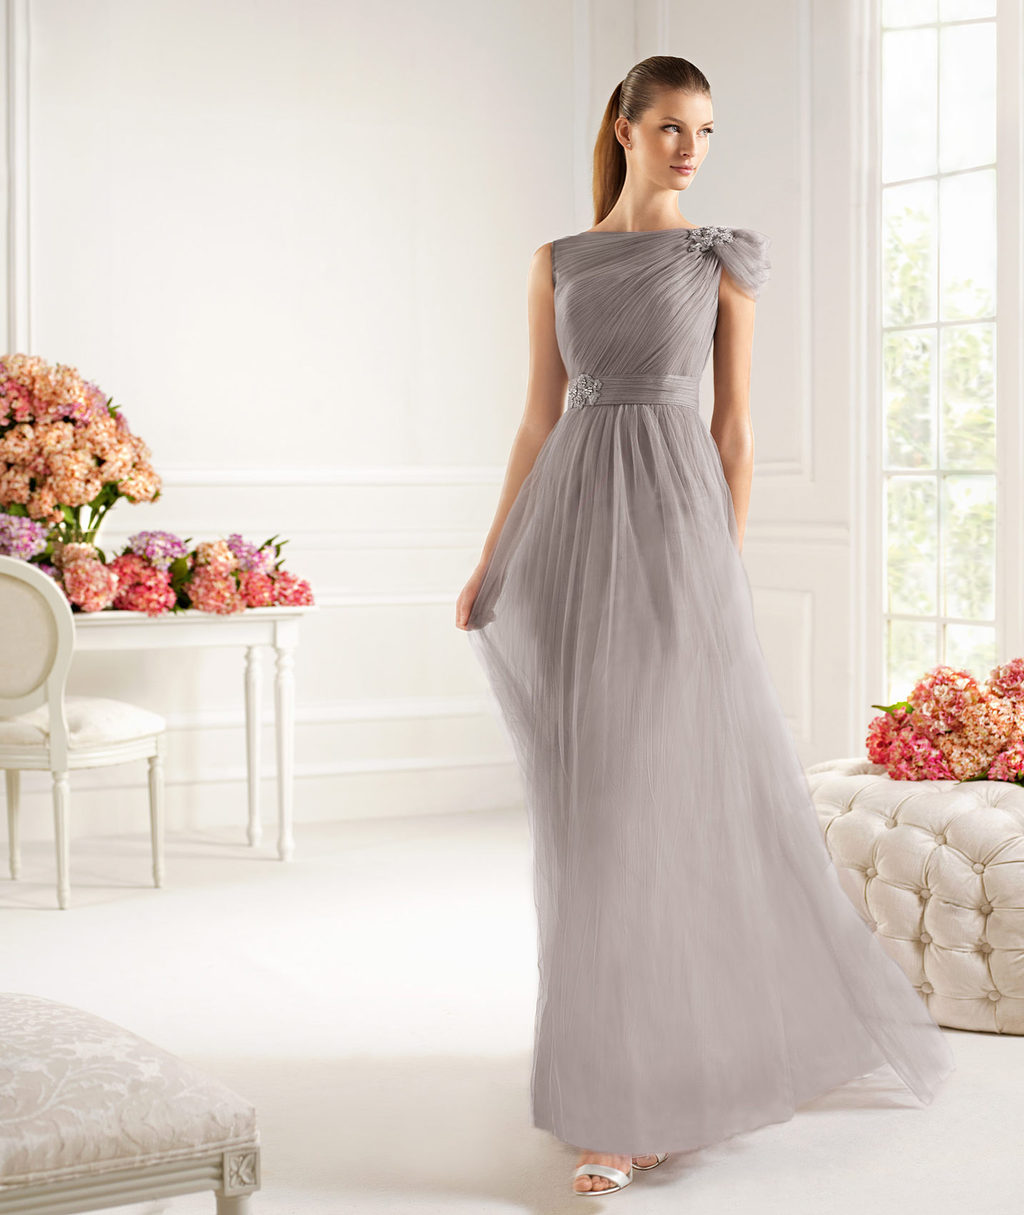 Taupe MOB evening gown chiffon